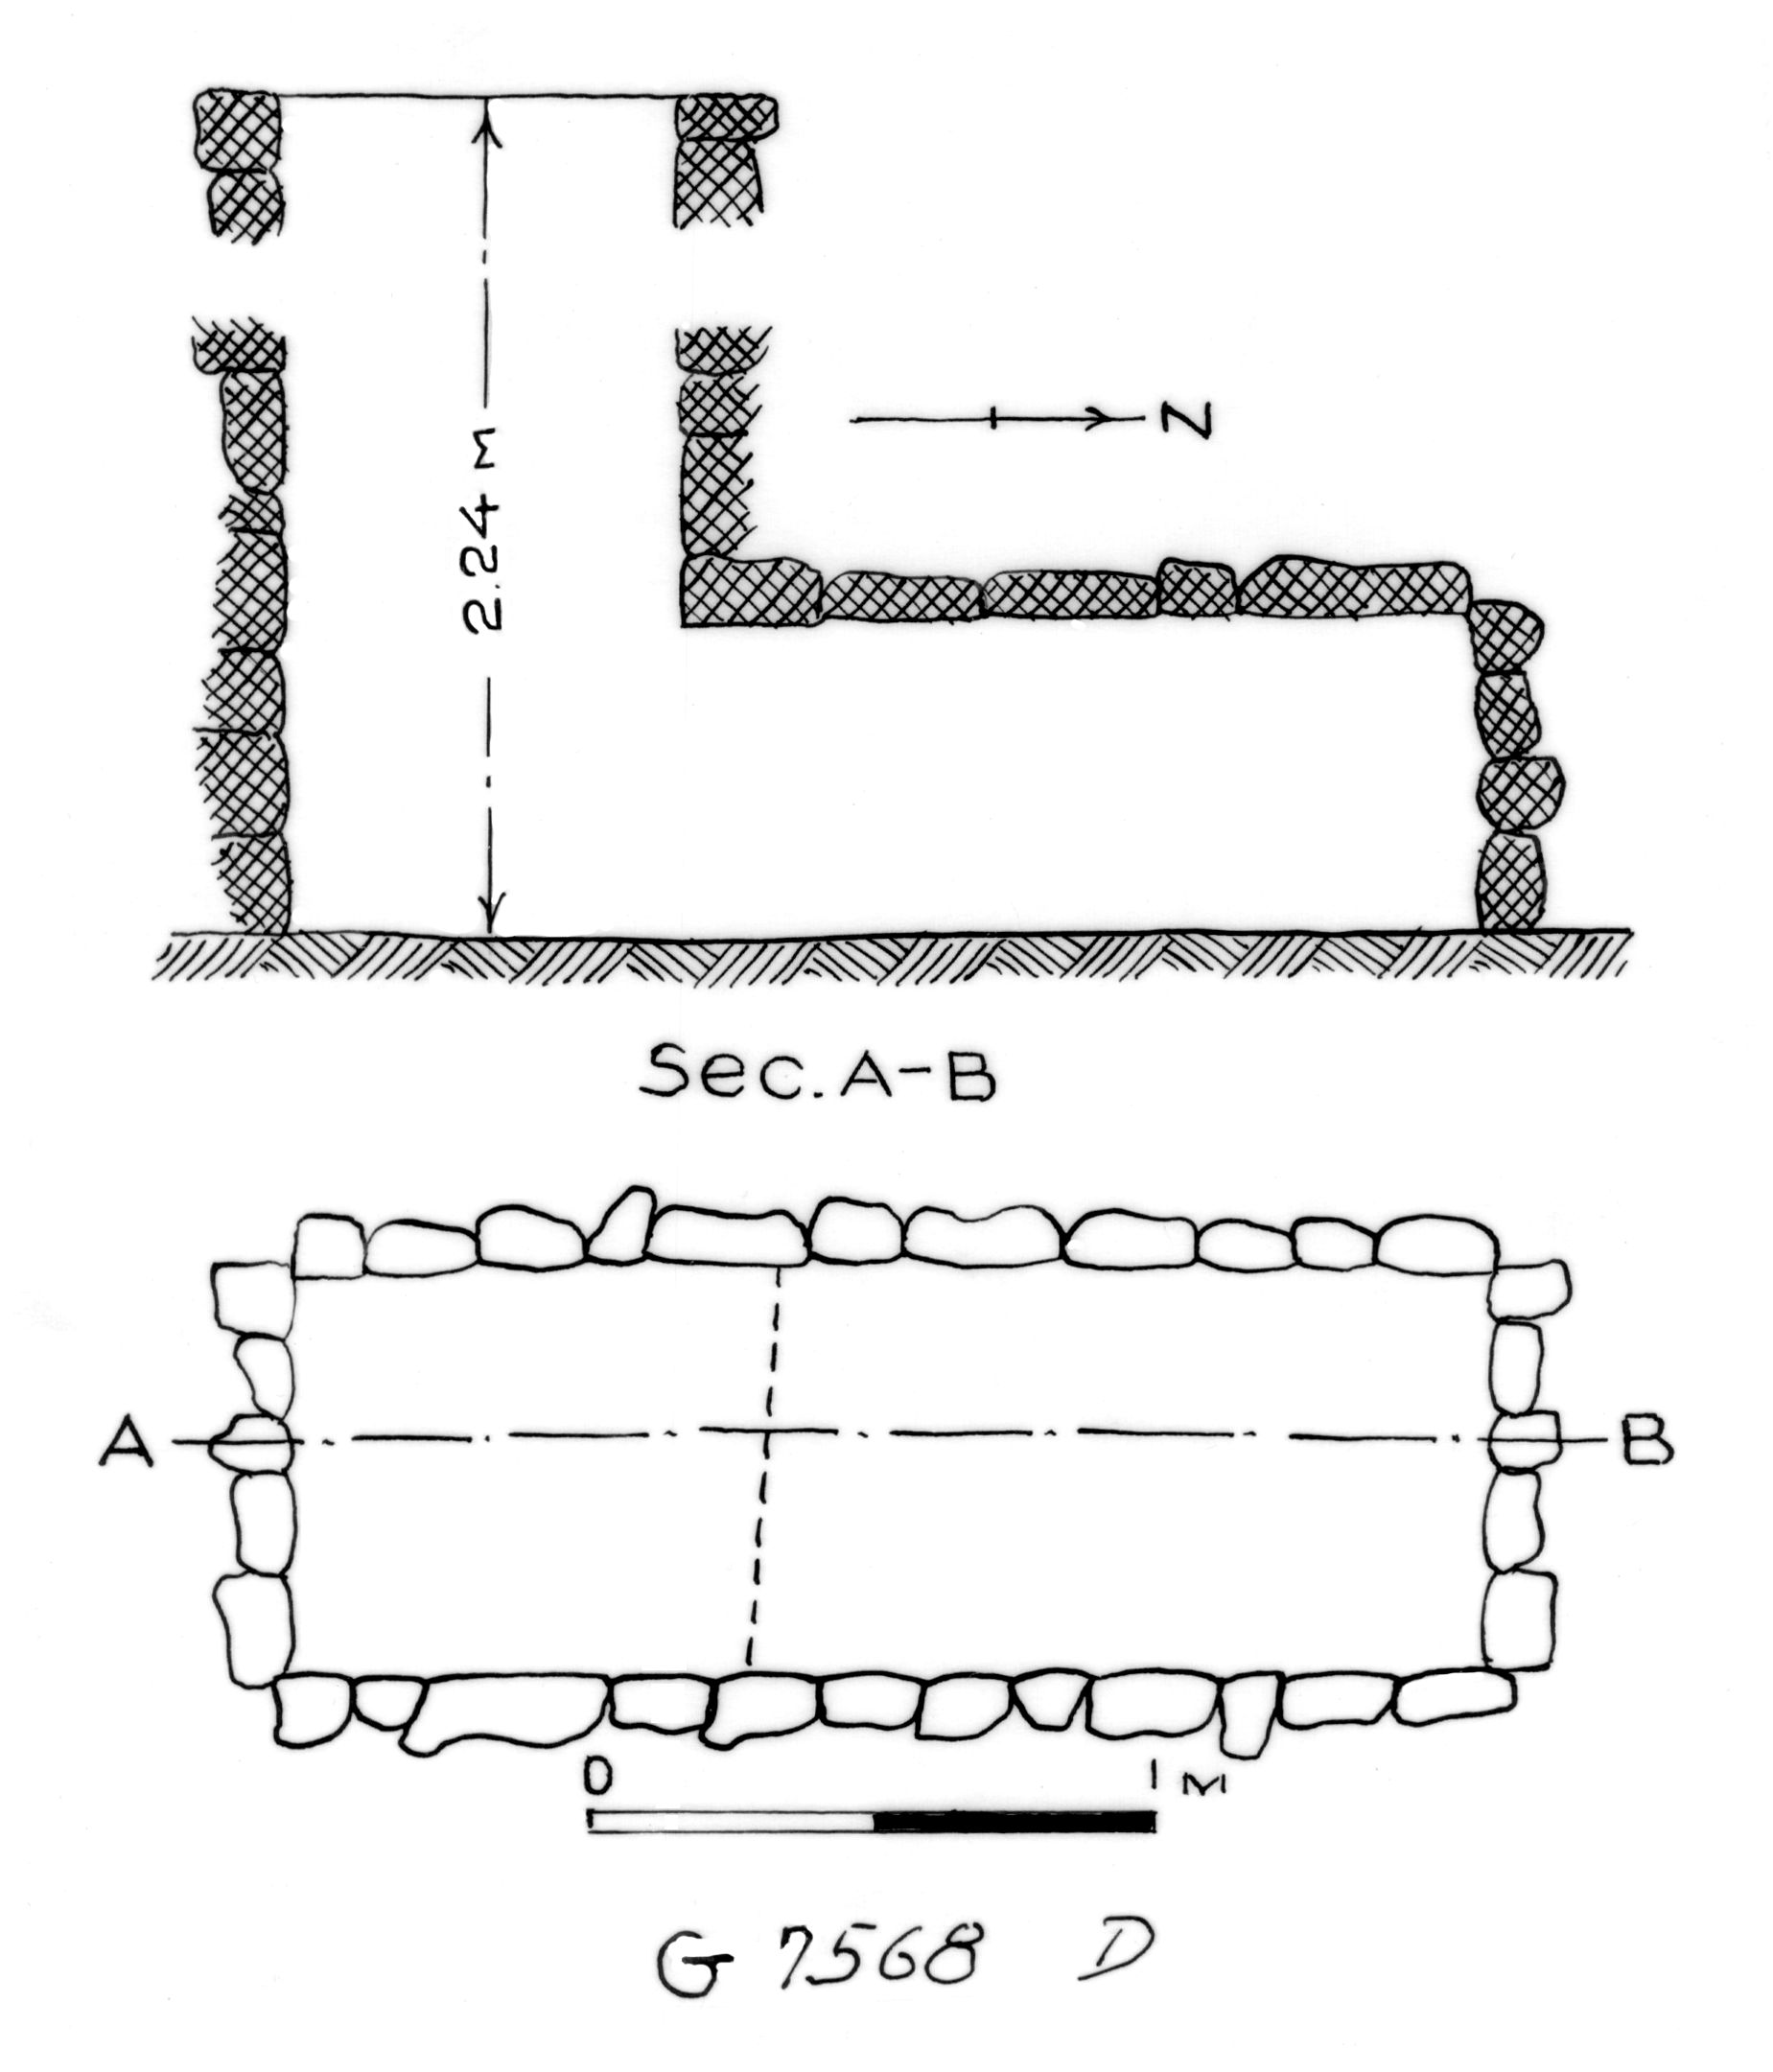 Maps and plans: G 7568, Shaft D